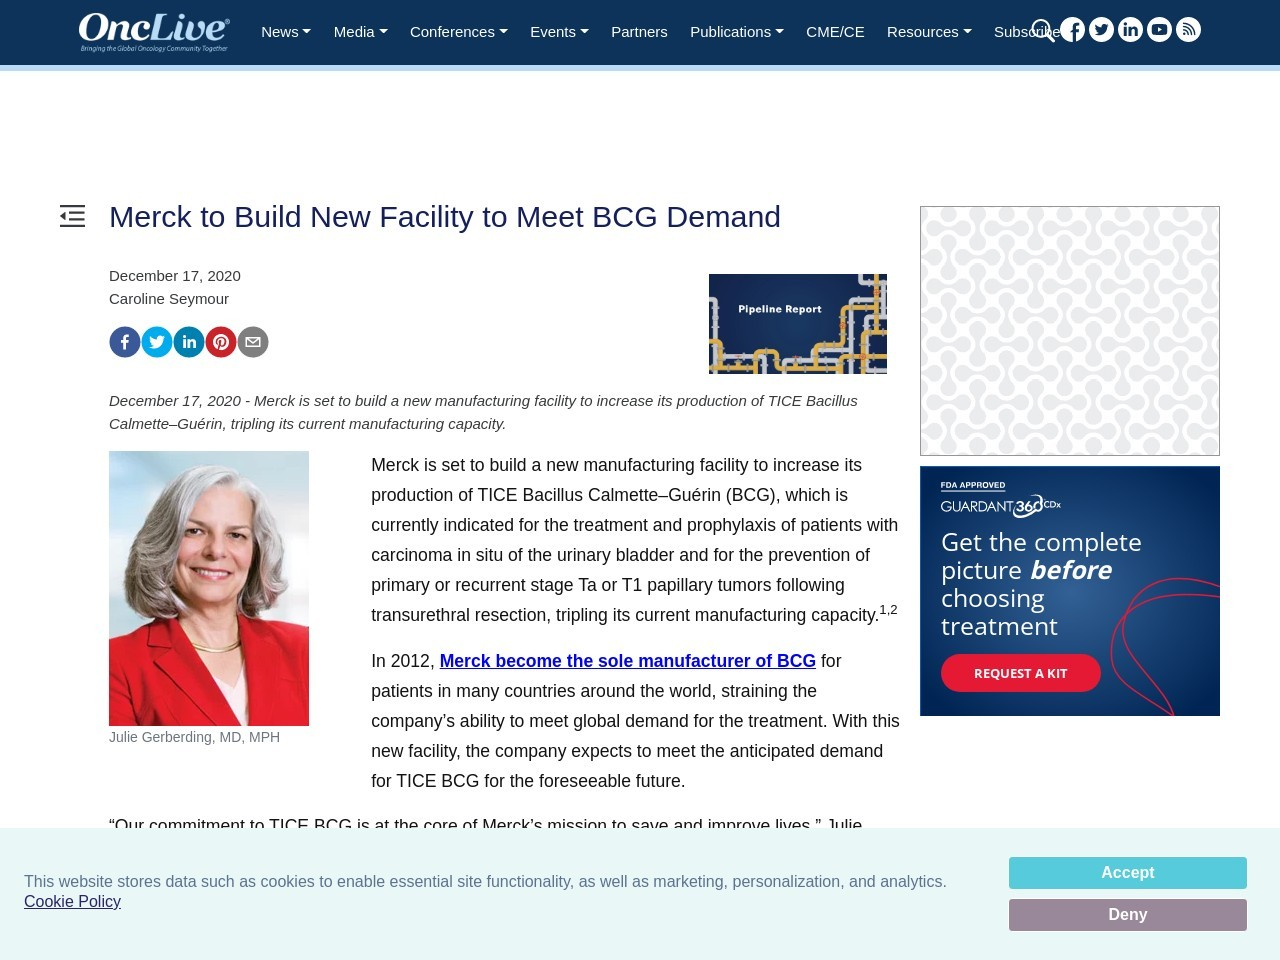 Merck to Build New Facility to Meet BCG Demand